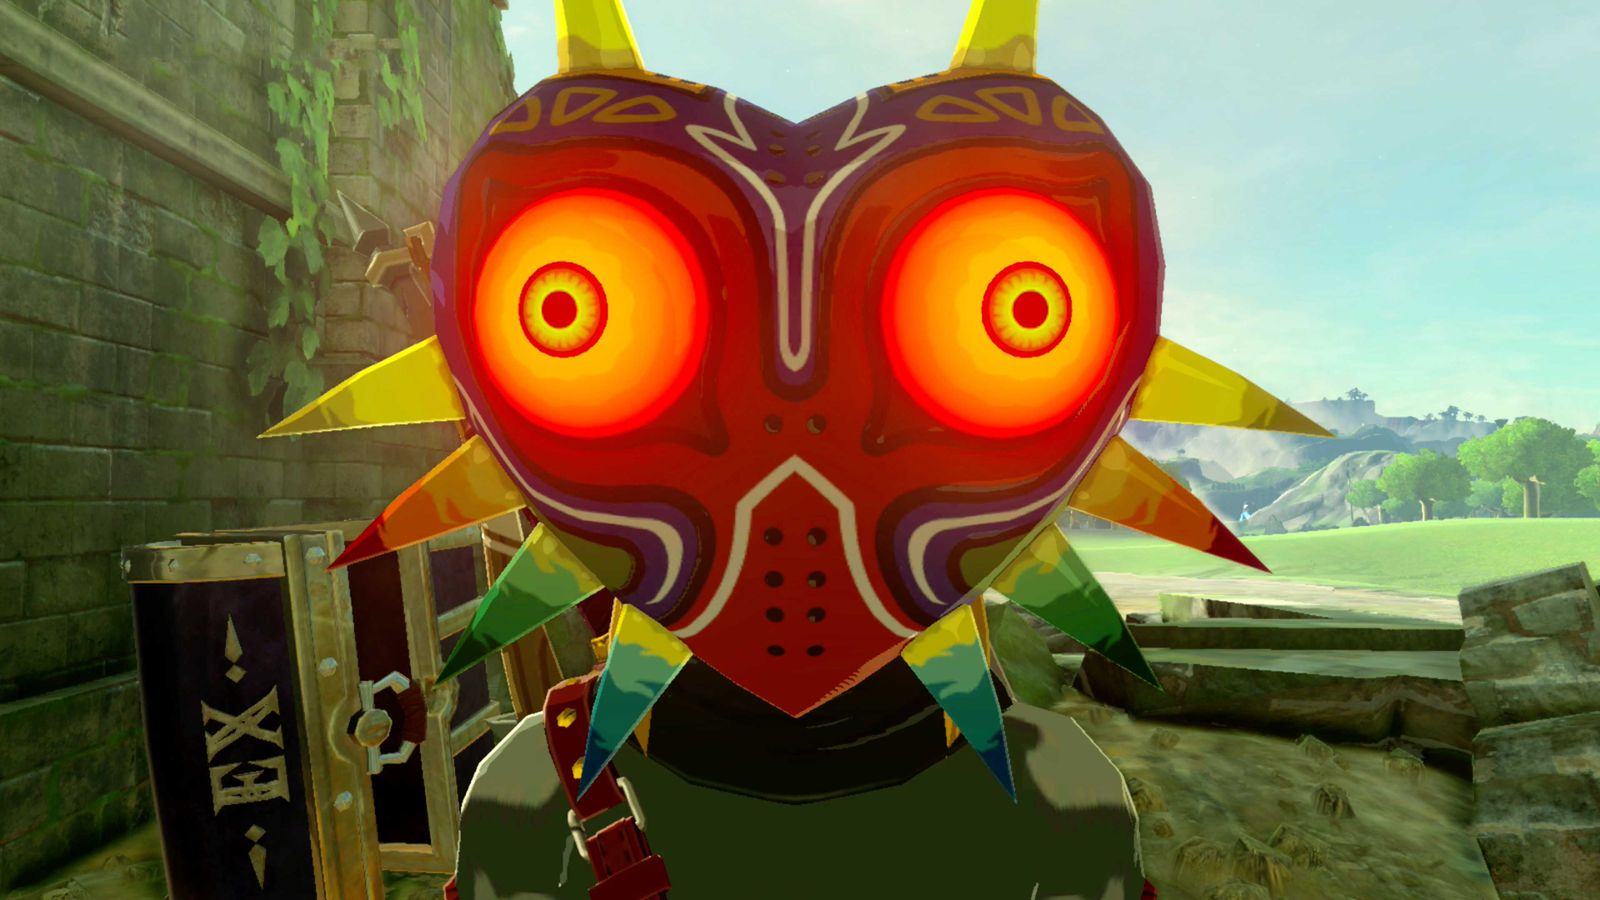 Zelda Botw Armor >> Zelda Breath of the Wild guide: How to find all of the new armor and masks in 'The Master Trials ...